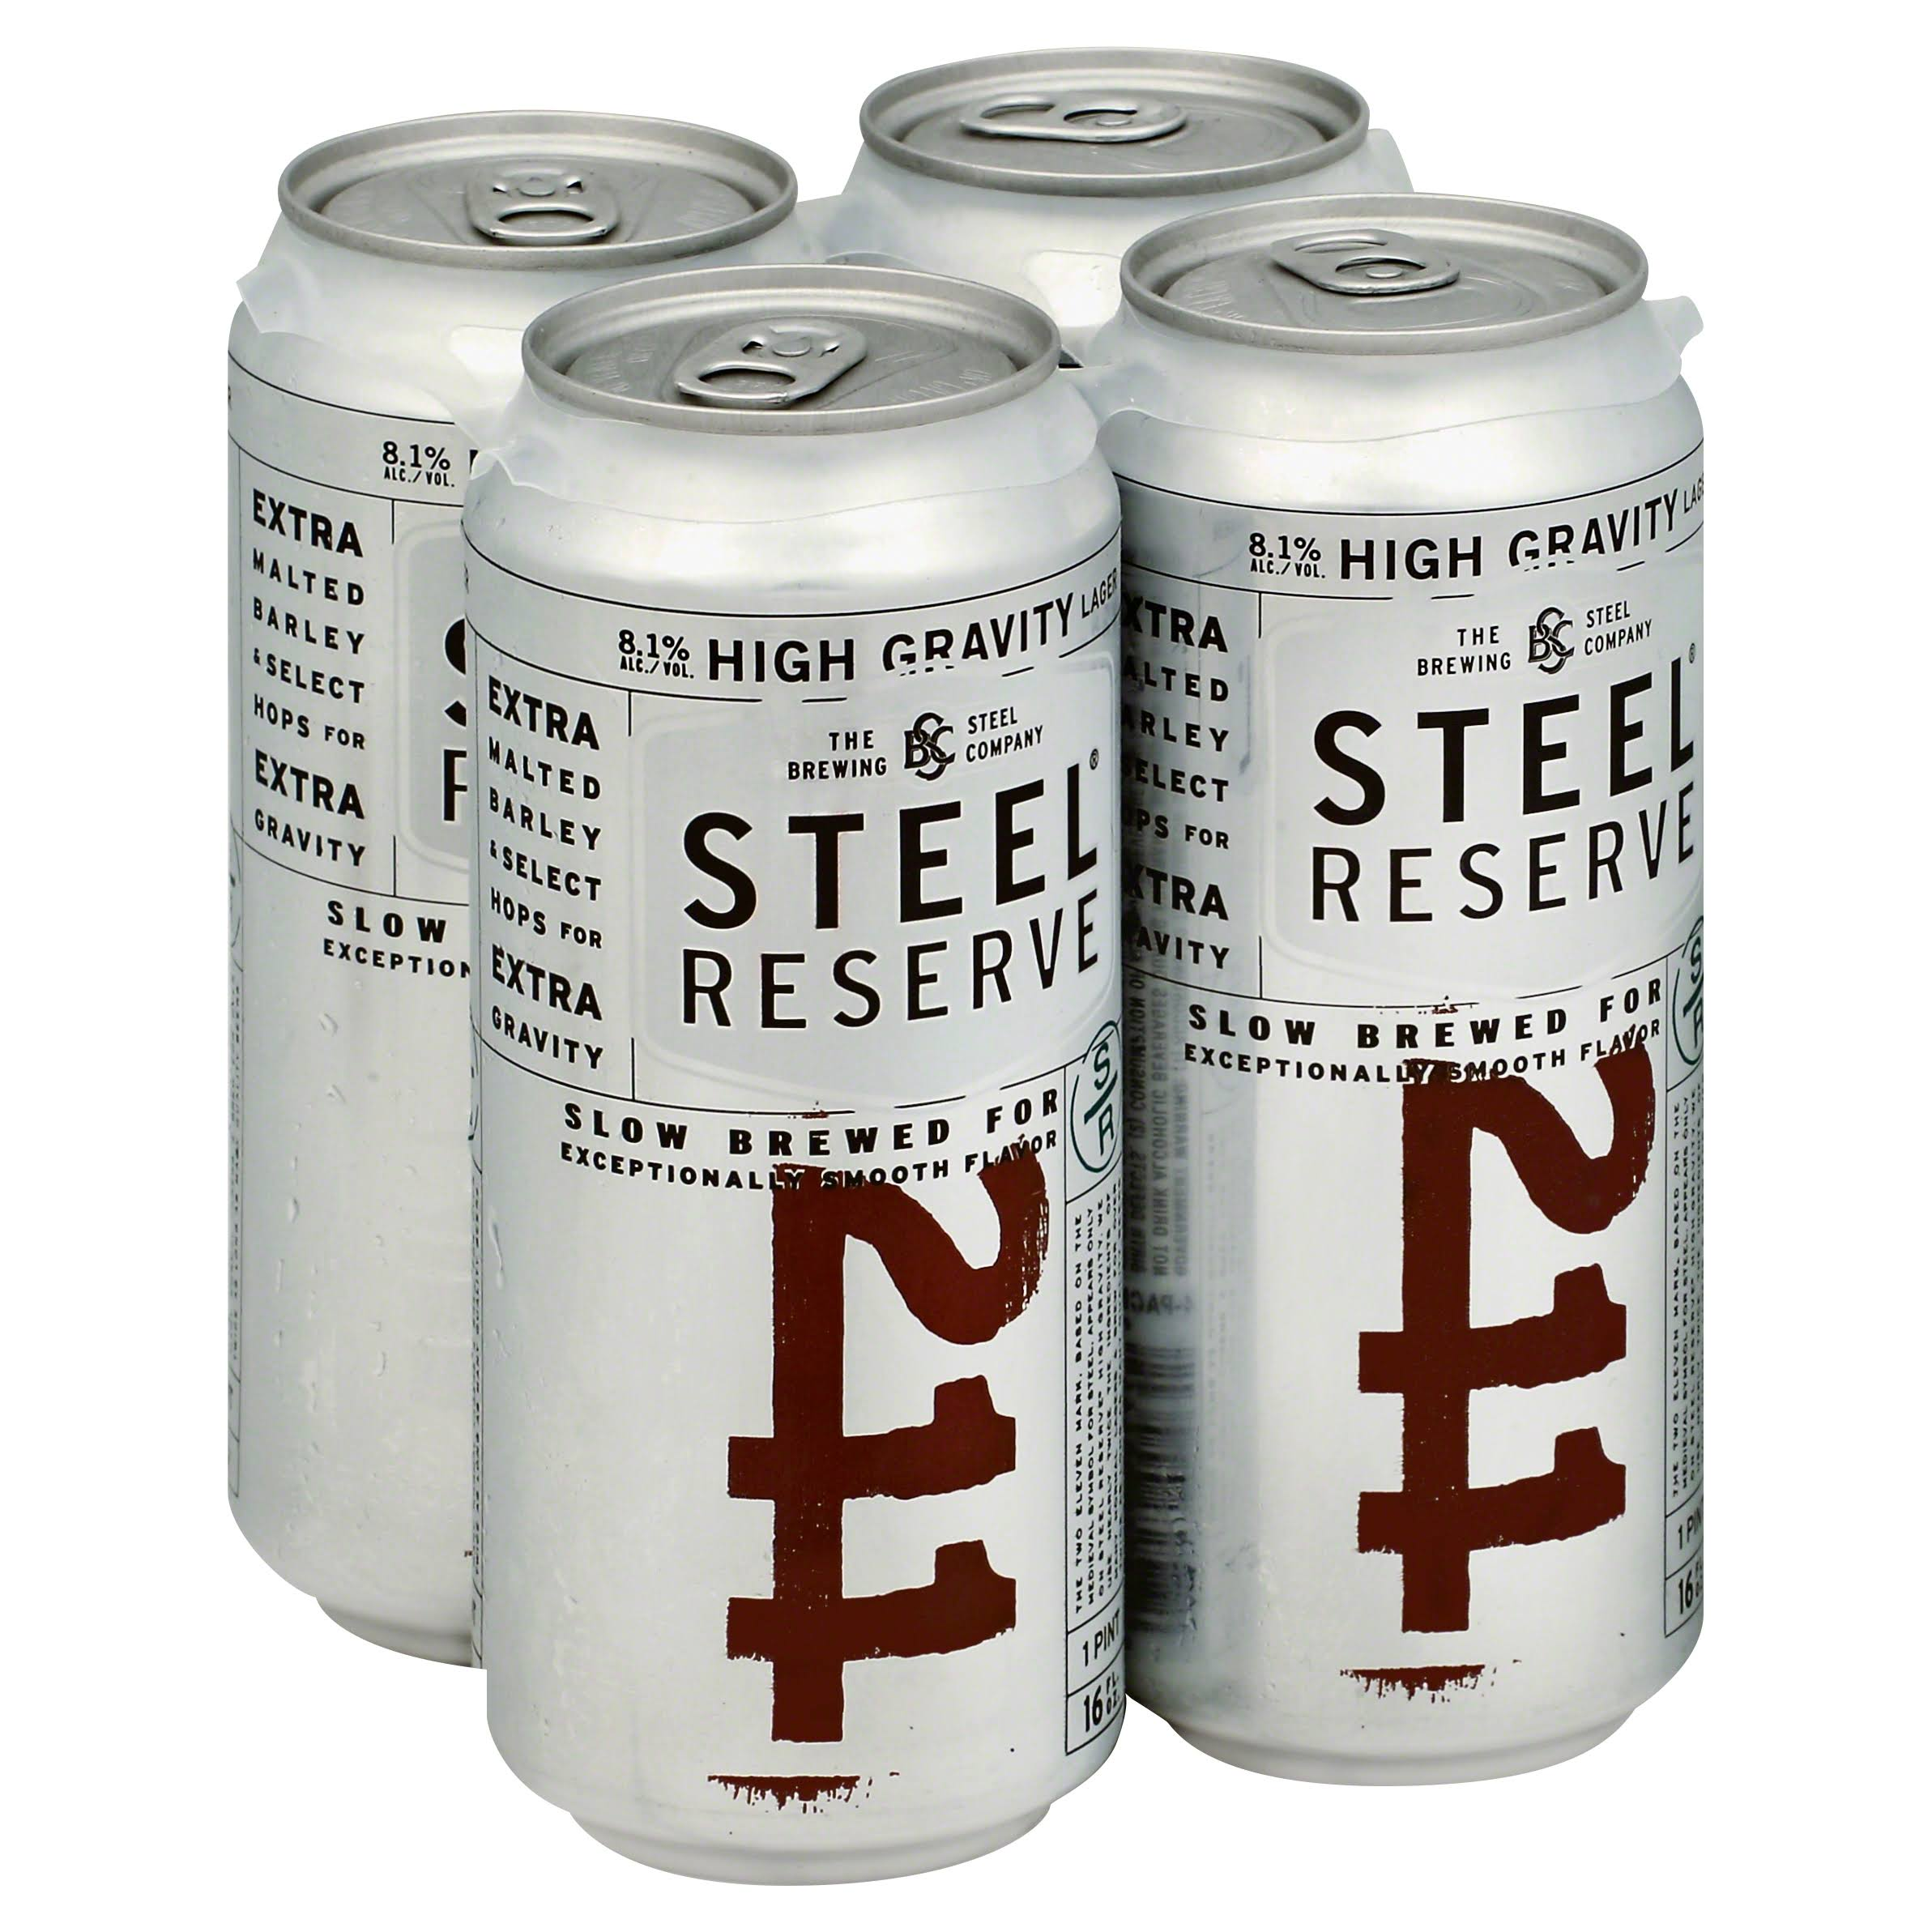 Steel Reserve 211 Beer, Lager, High Gravity - 4 pack, 16 fl oz cans